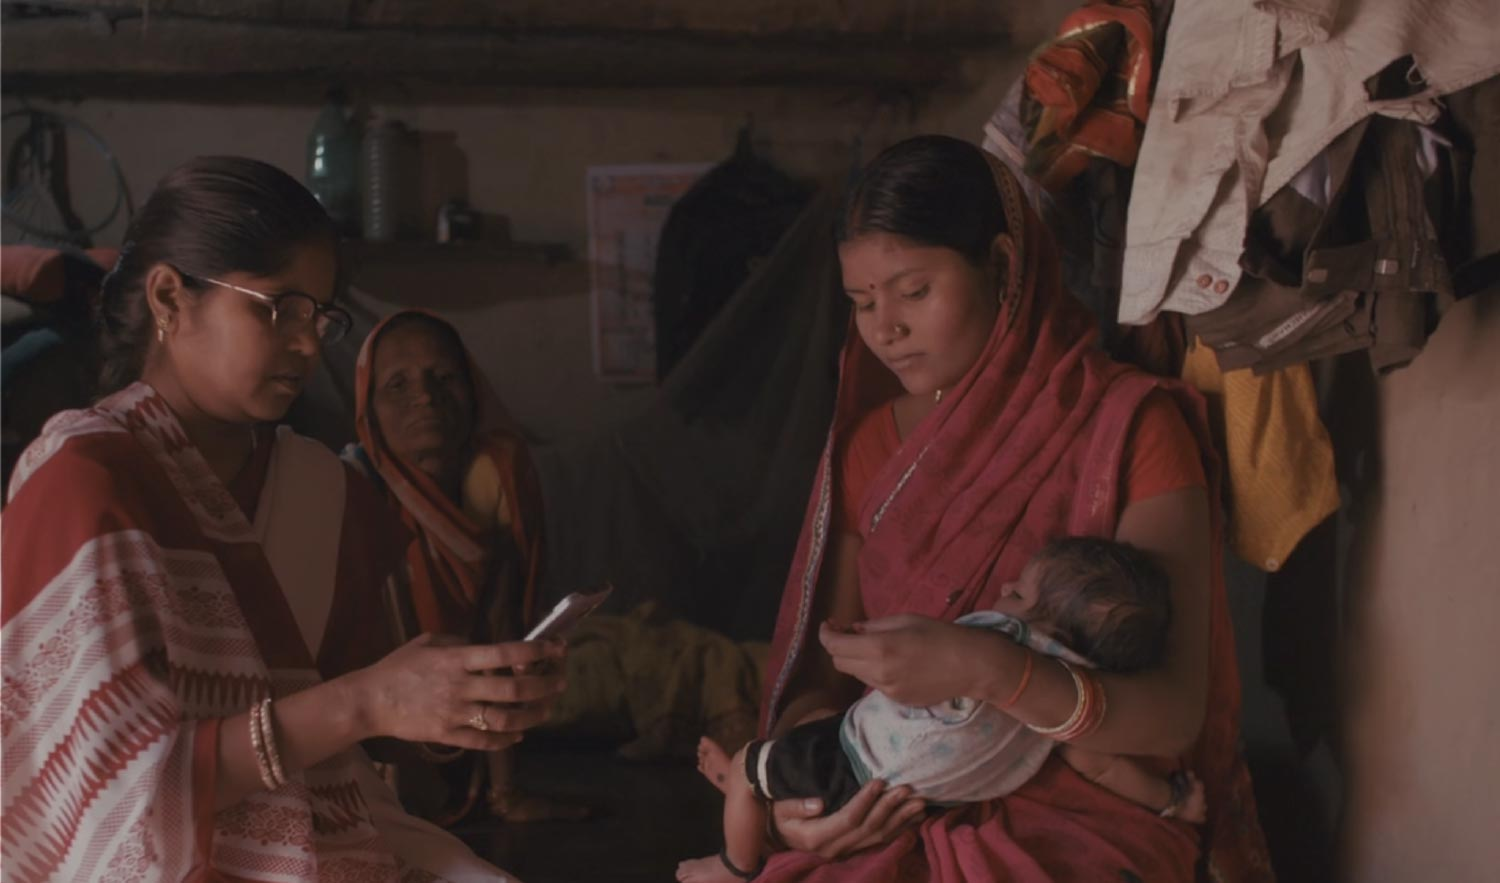 A woman holds a baby while another looks something up on a mobile phone.